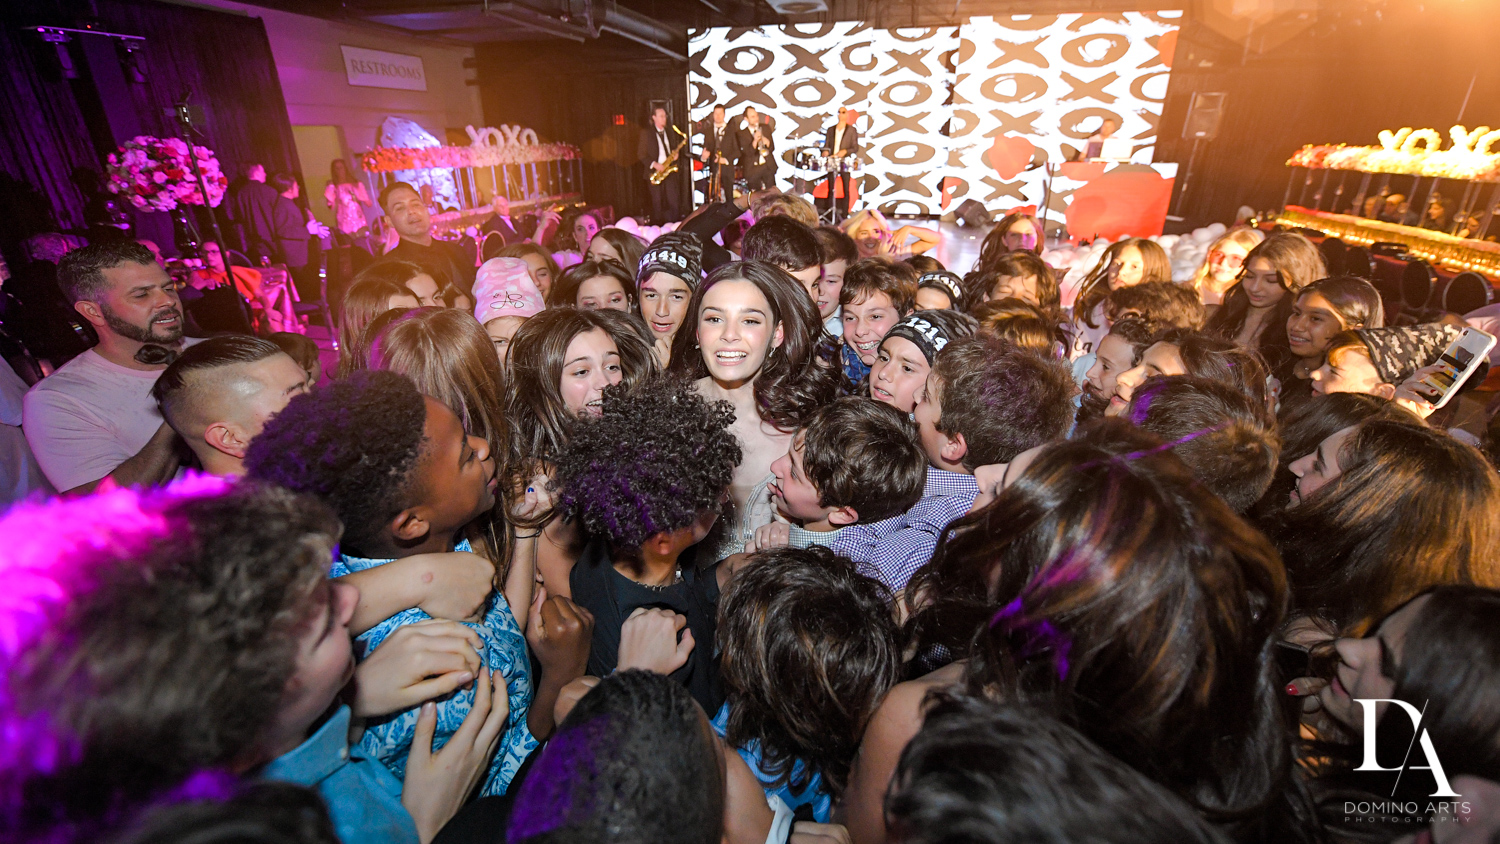 party crwod at Fashion Theme Bat Mitzvah at Gallery of Amazing Things by Domino Arts Photography